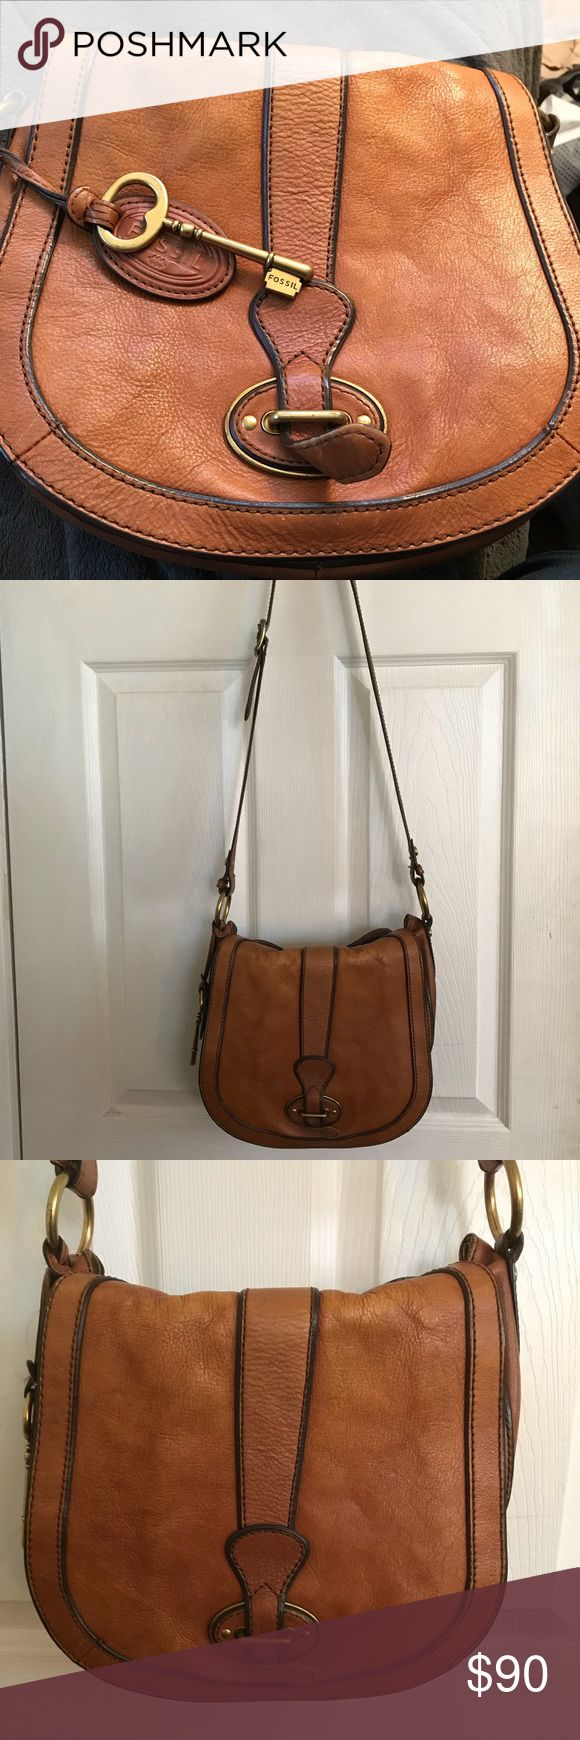 Chestnut brown Fossil shoulder bag Beautiful chestnut brown color! Used with plenty of care. Medium sized bag with a few zipper compartments inside for extra storage. Fossil Bags Shoulder Bags